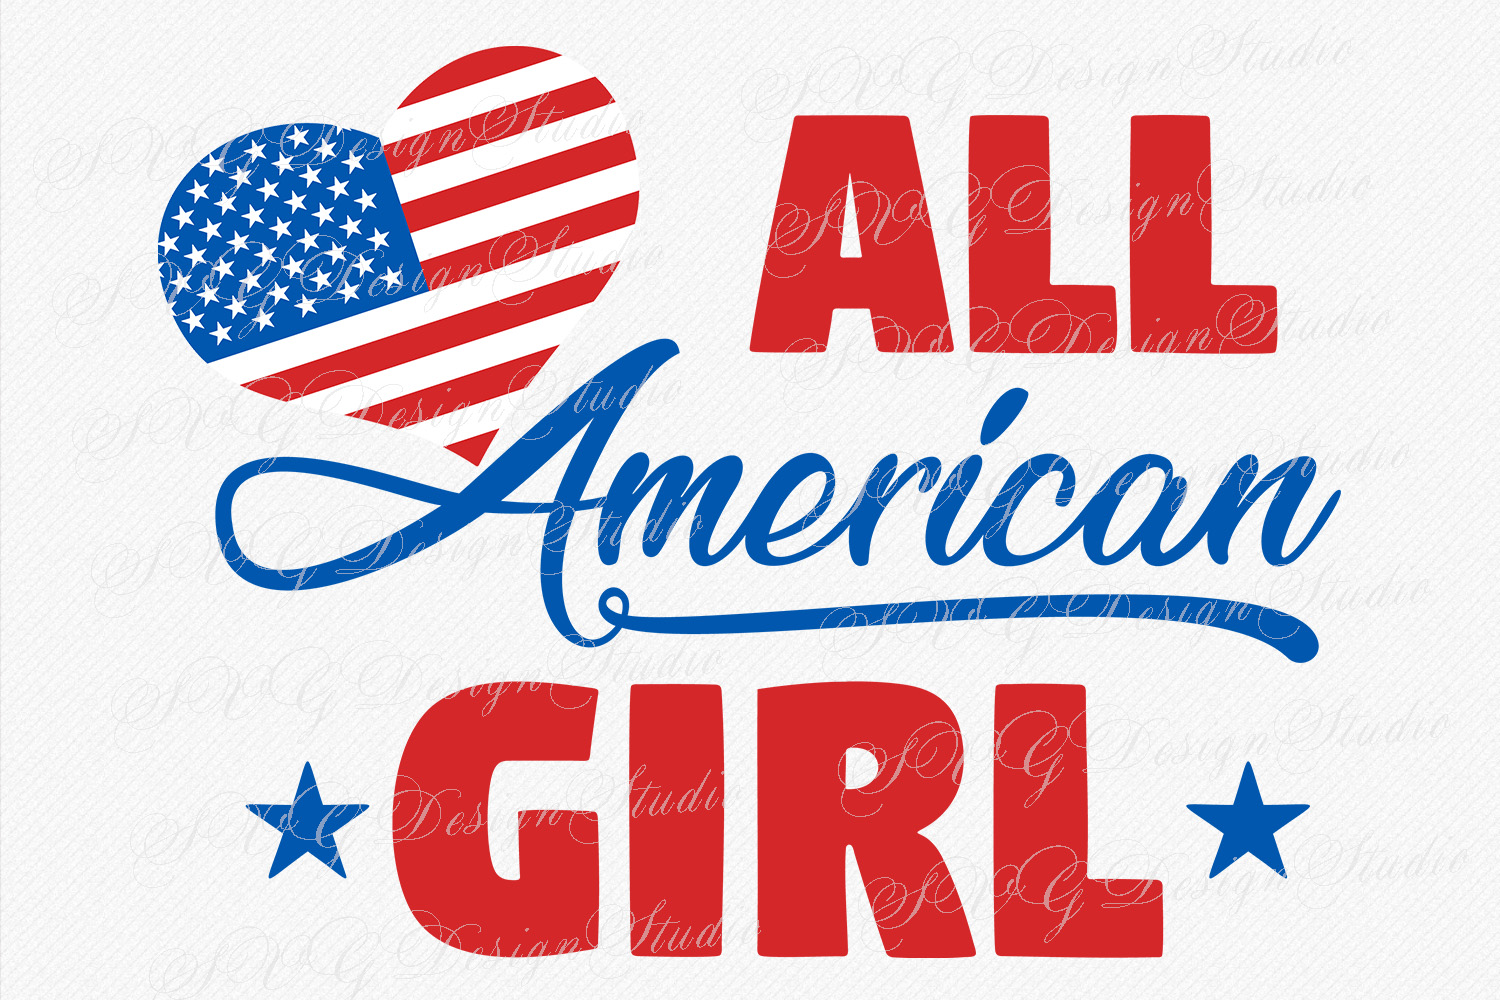 All American Girl, America love flag, America svg, Fourth of July svg, 4th of July Patriotic SVG, T-Shirt Designs example image 1